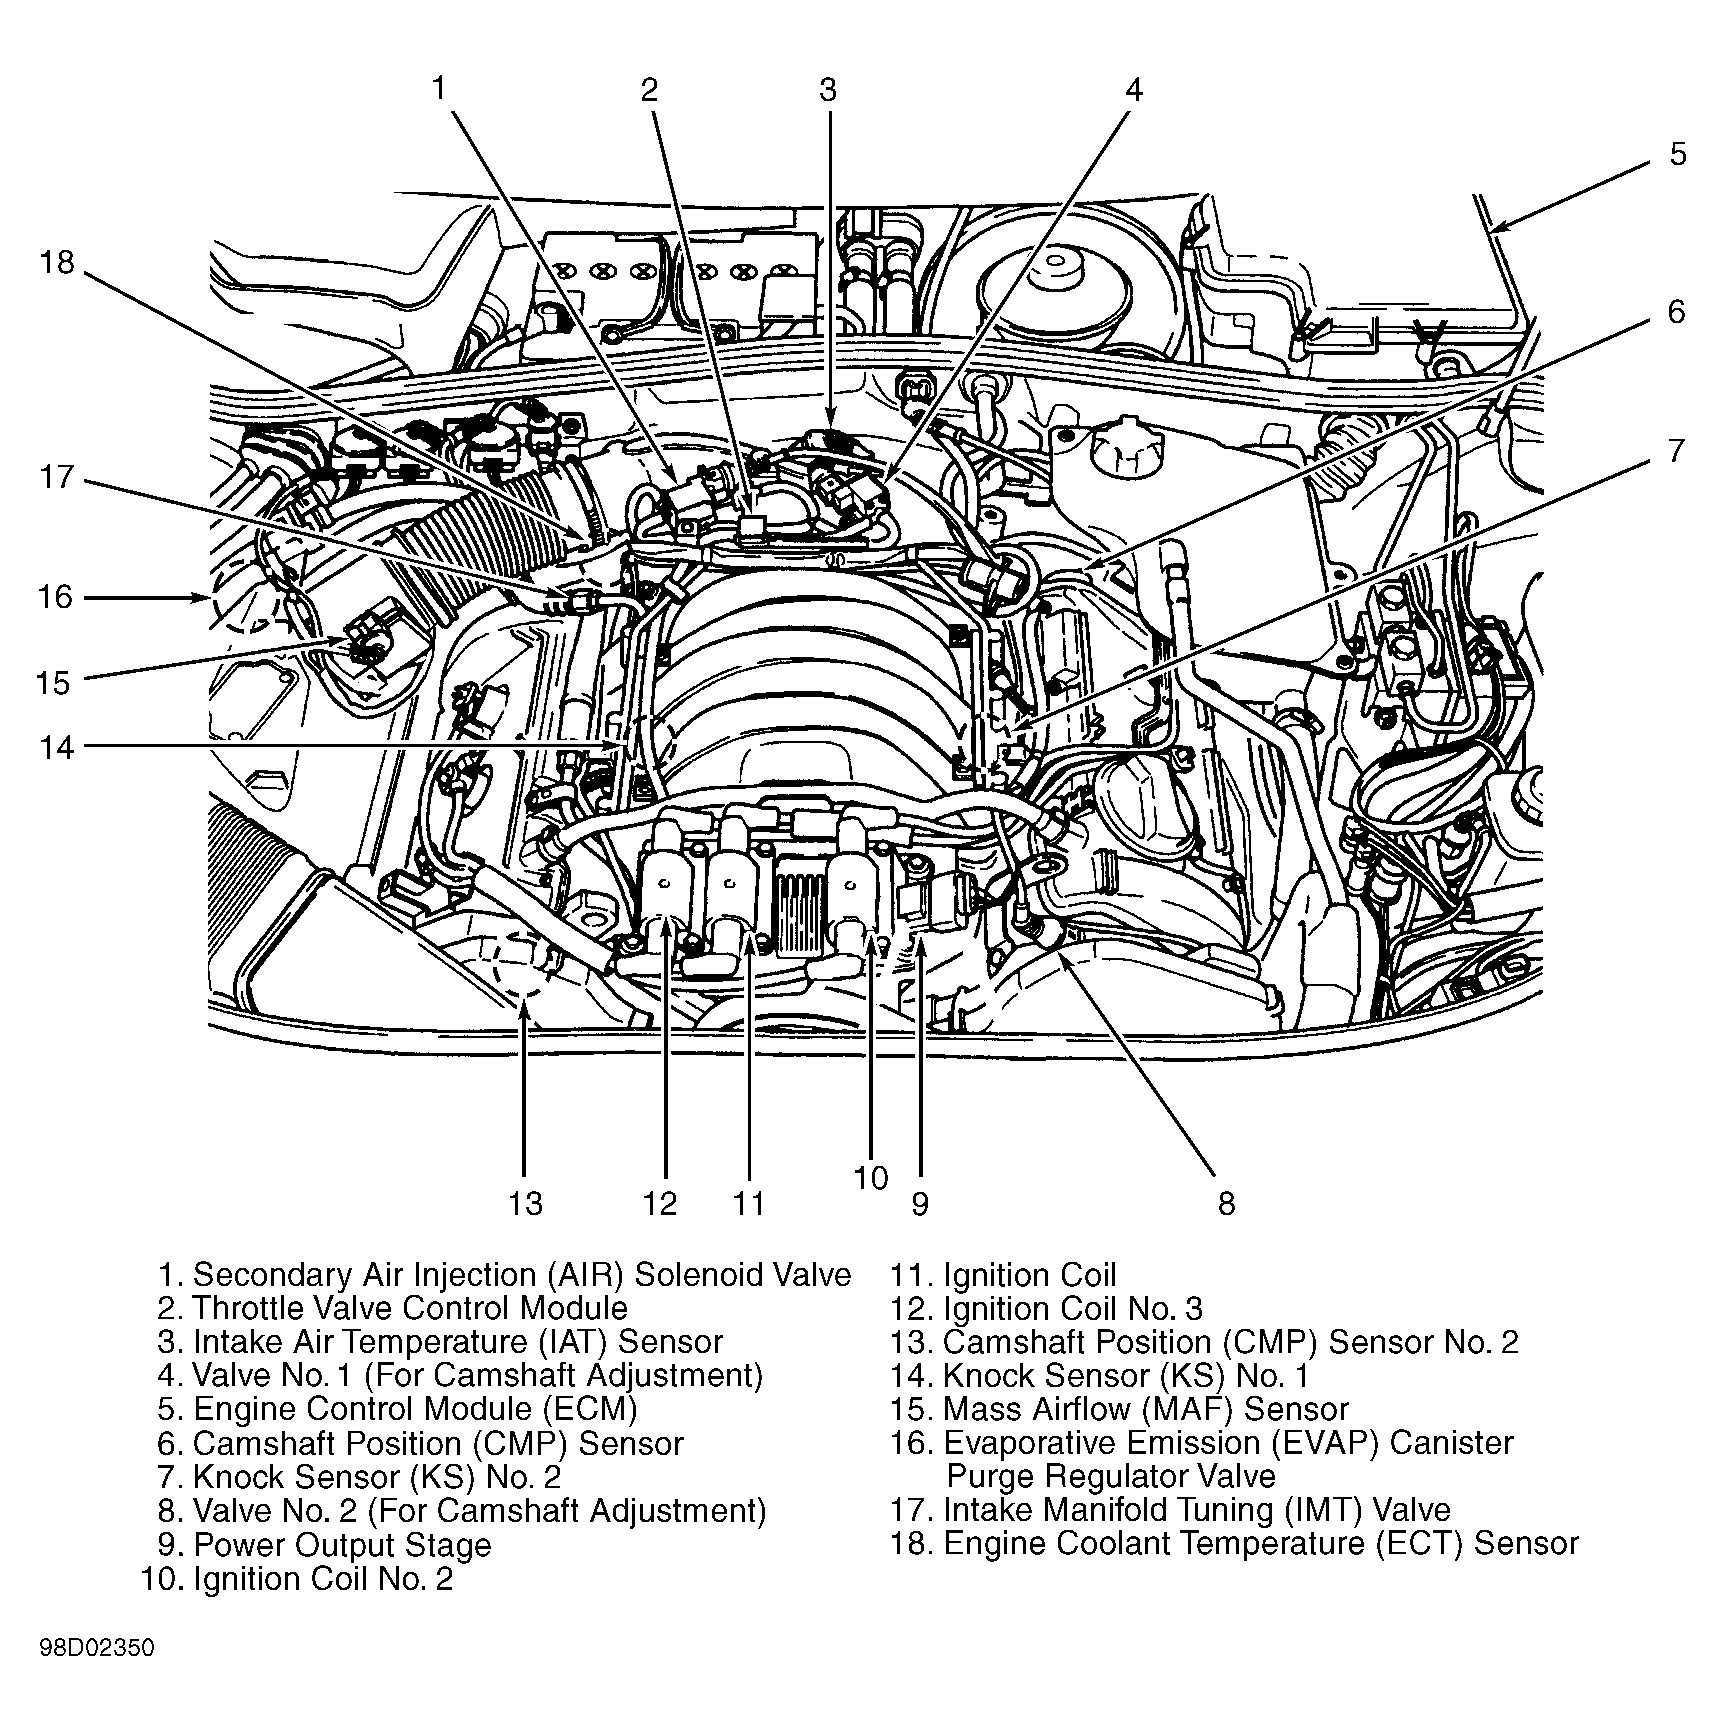 hight resolution of 1997 dodge ram engine diagram wiring diagram forward 97 dodge ram 1500 engine diagram